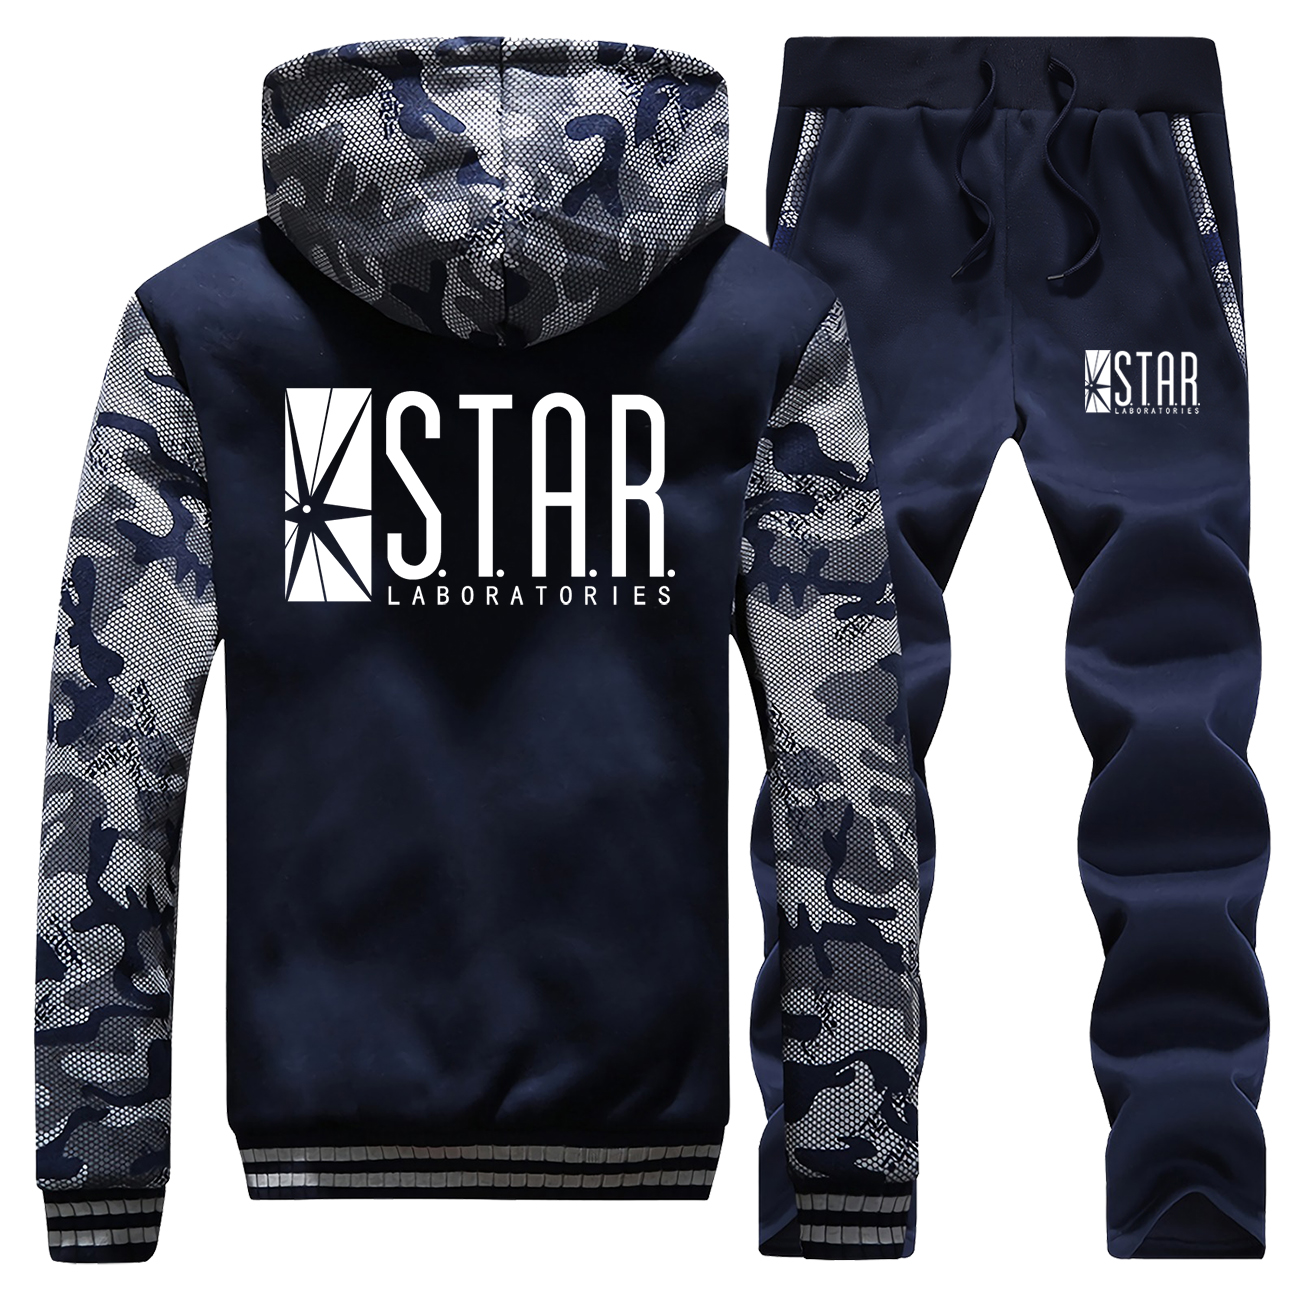 The Flash Thick Male Set S.T.A.R. Labs Pants Jackets 2019 Winter Camouflage Outweat Casual Sweatsuit Men Fashion Star Labs Sets